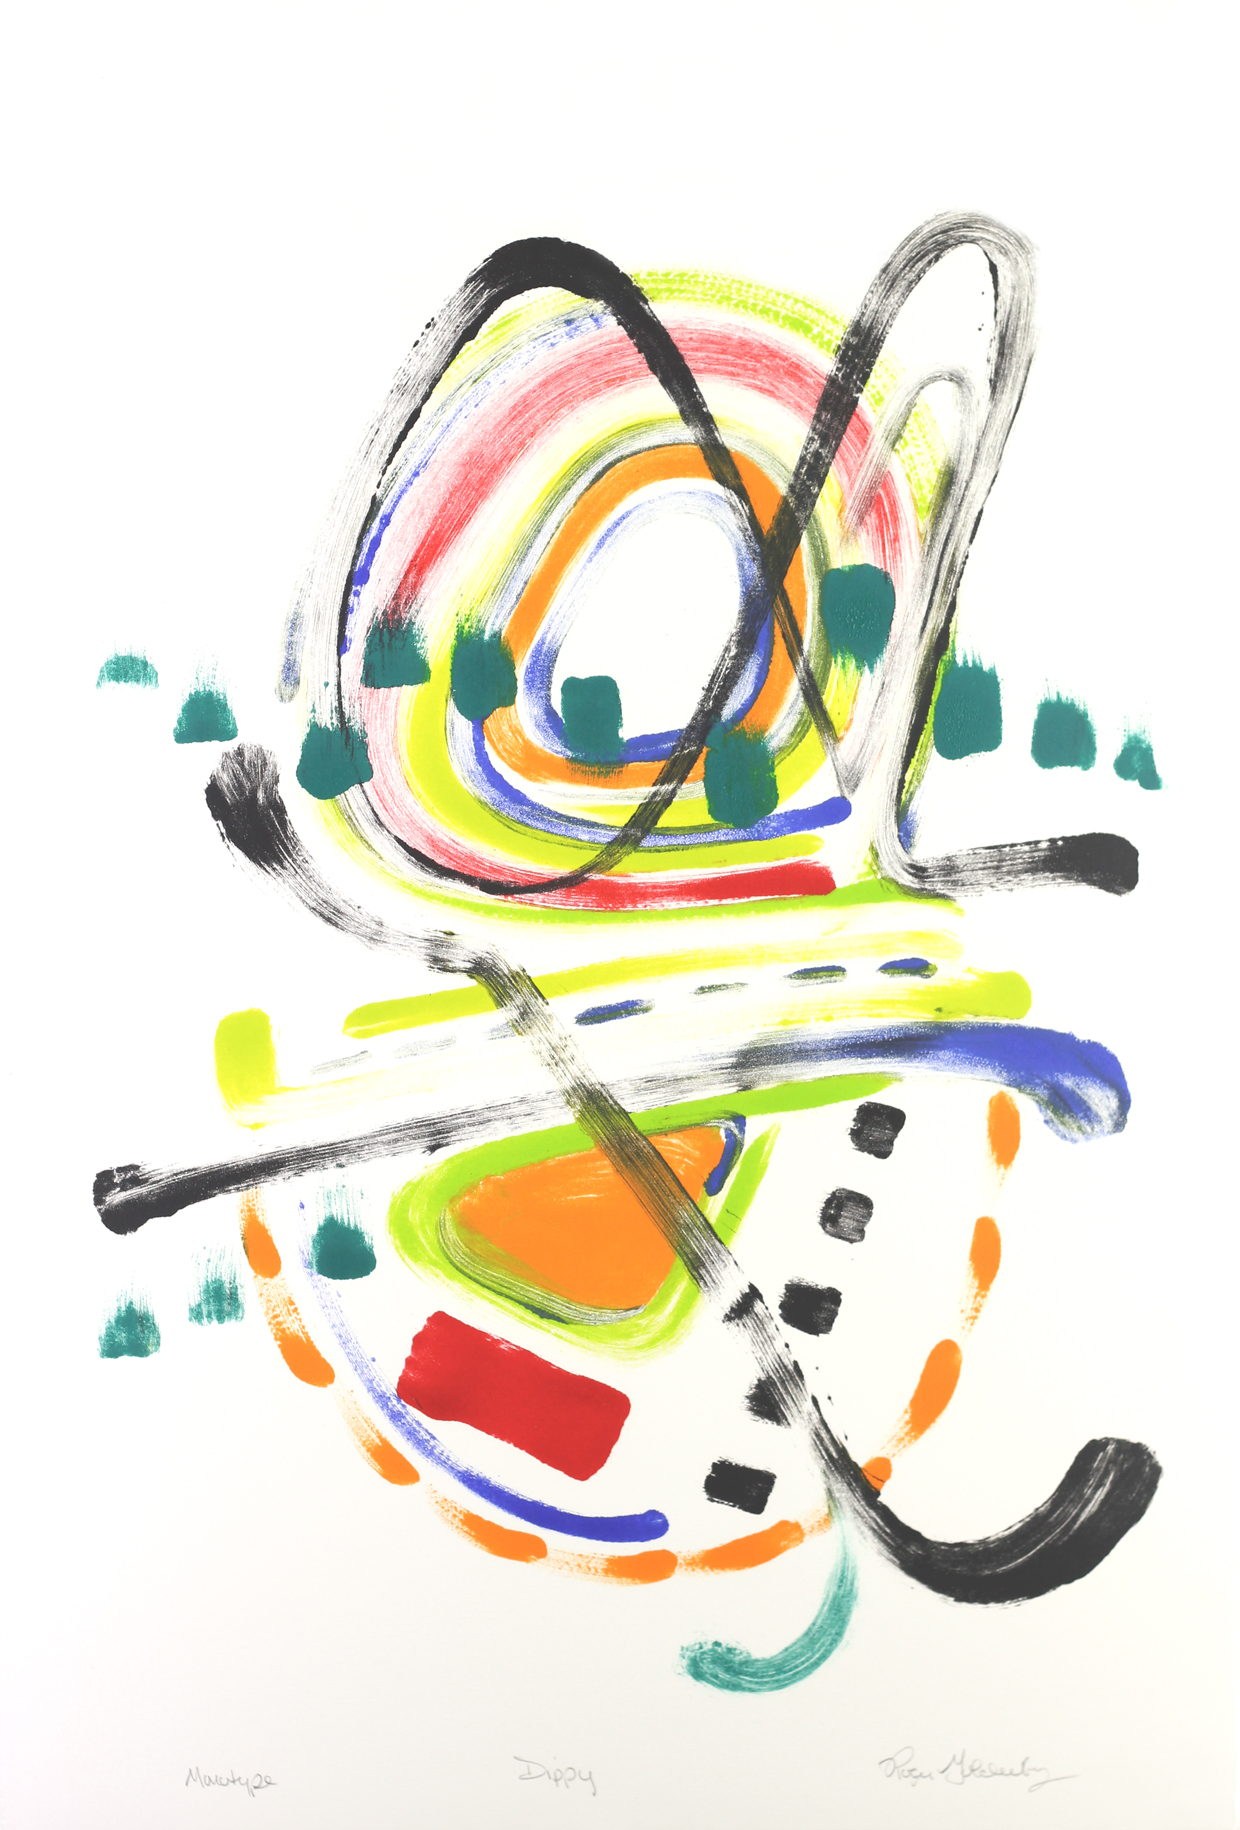 Roger Goldenberg's Visual Jazz Monotype Gallery D has prints pulled from shaped plates. Their style riffs on Goldenberg's shaped visual jazz paintings Dippy